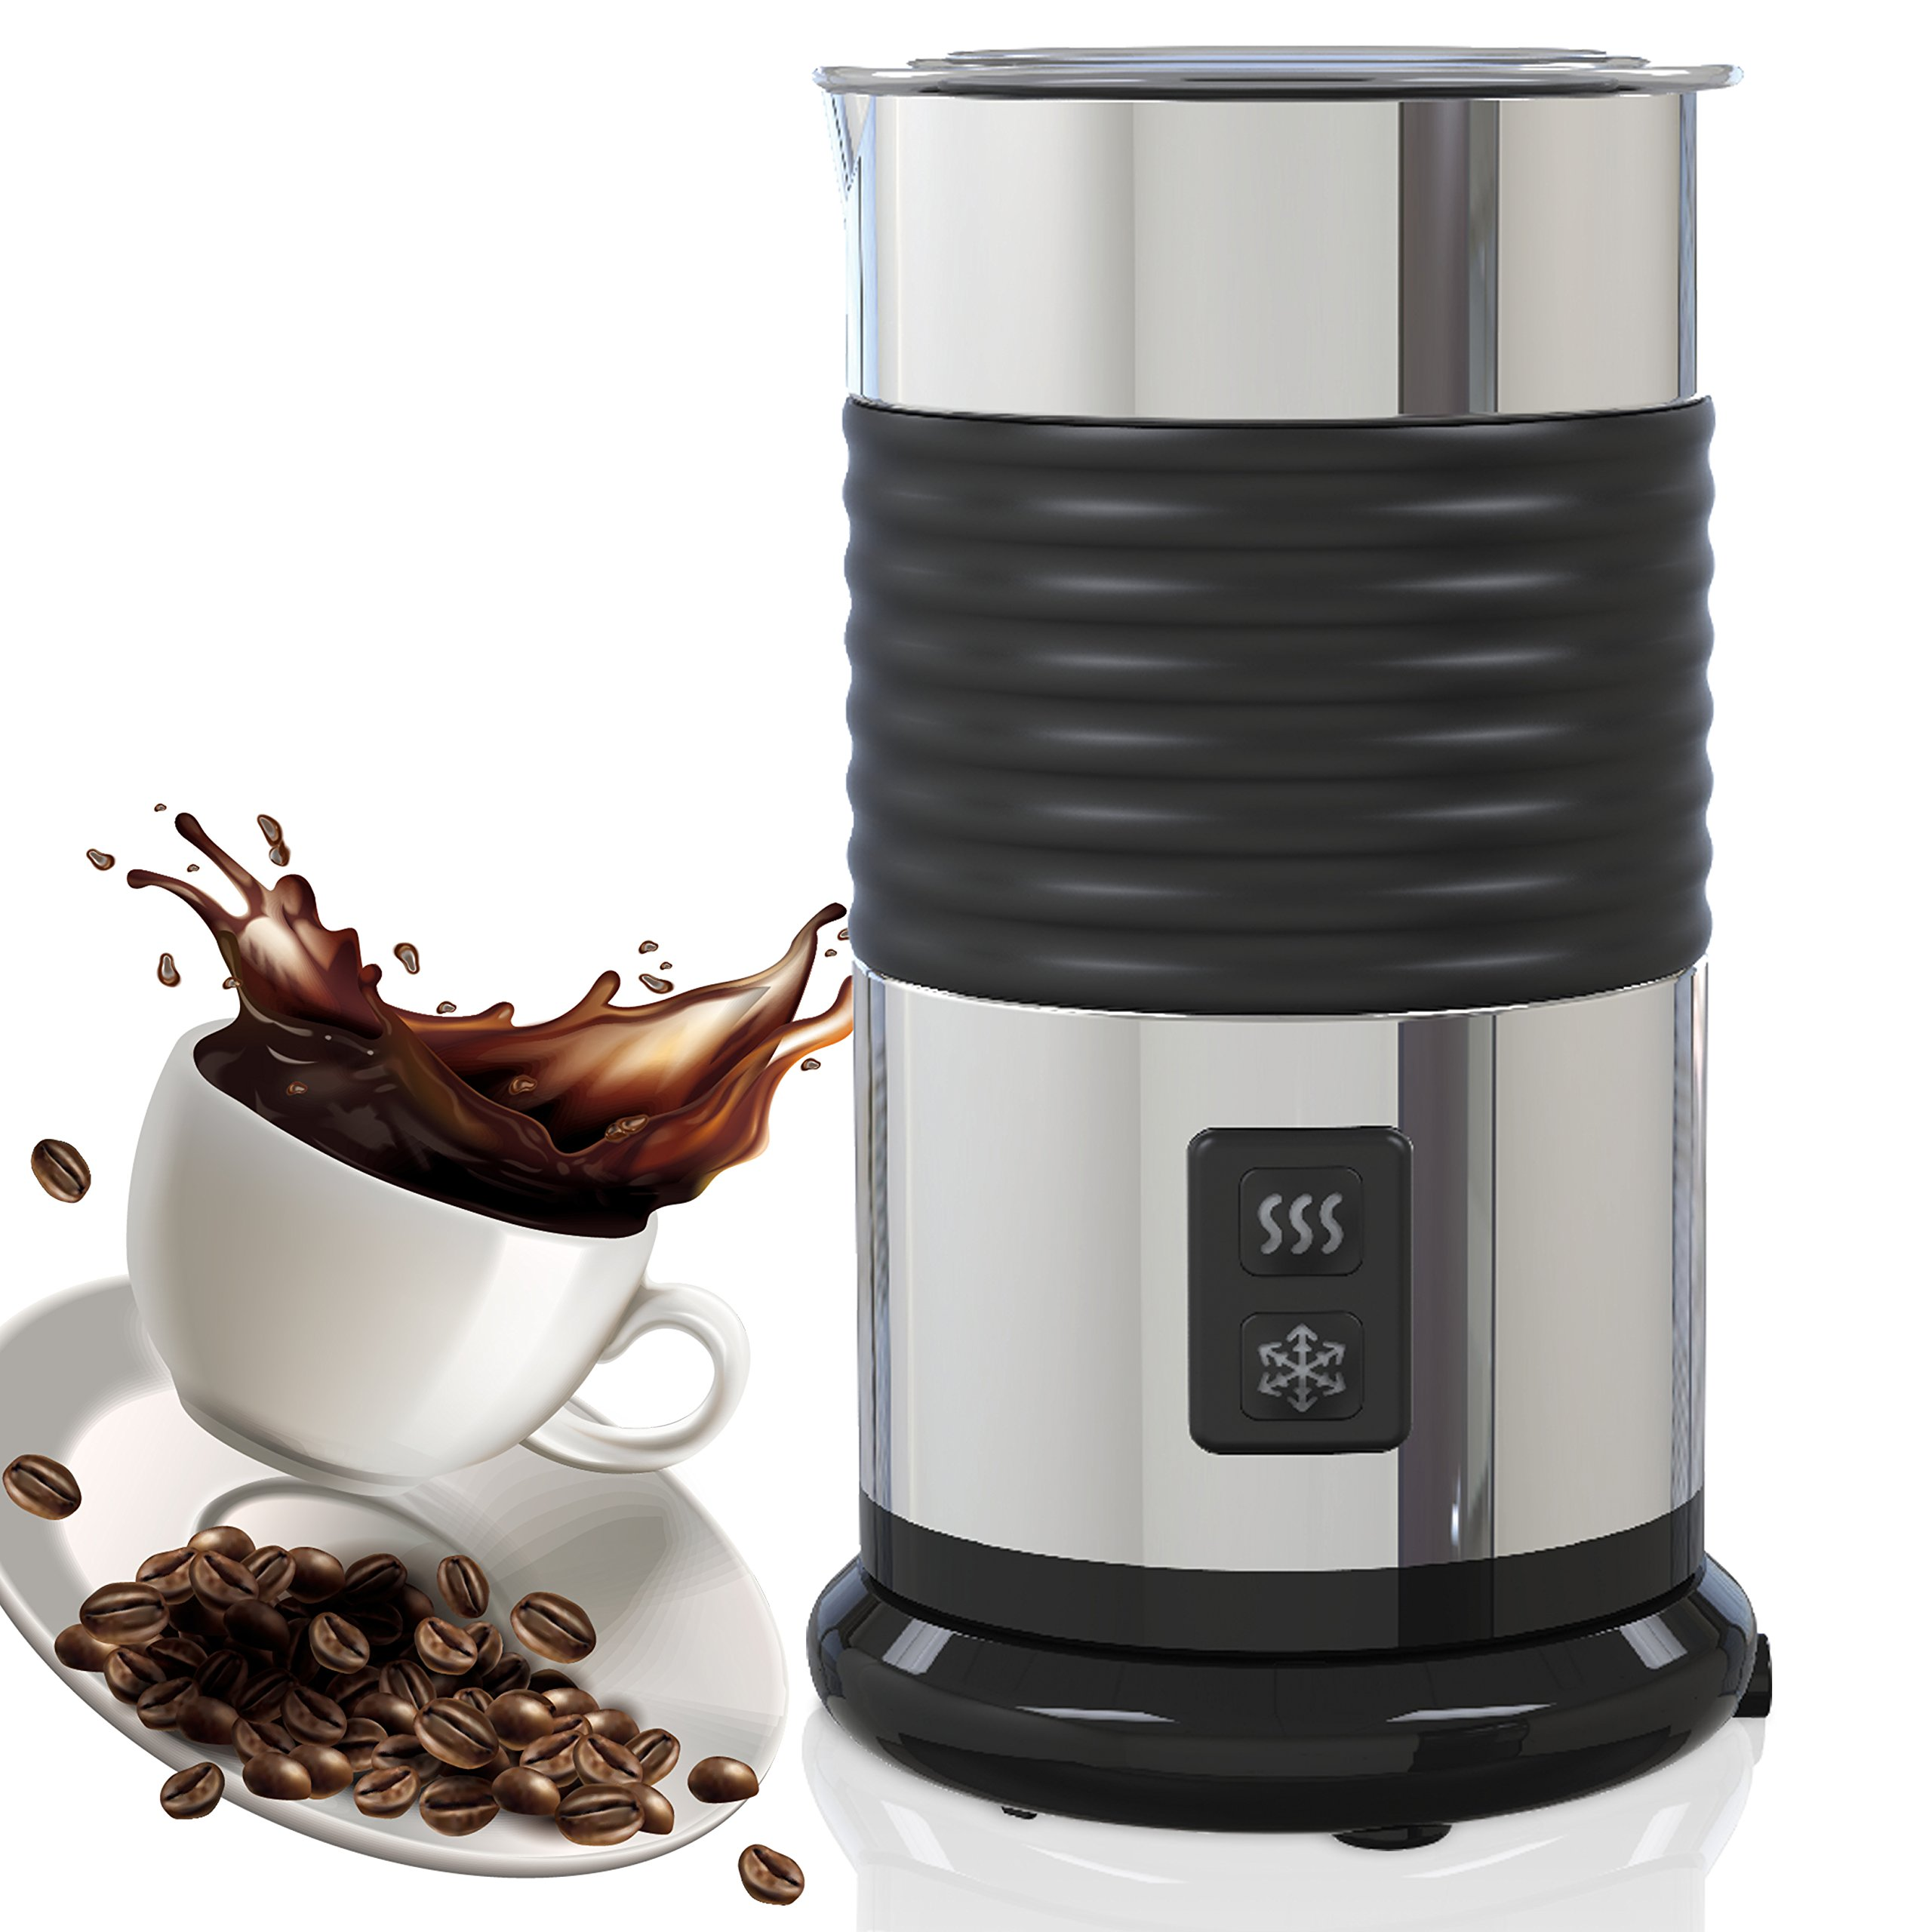 Automatic Milk Frother And Warmer – Stainless Steel Insulated Foamer For Hot & Cold Coffee Beverages, Quick And Easy To Use, Silent Operation, Cordless Pitcher For Pouring & Serving Cappuccino & Latte